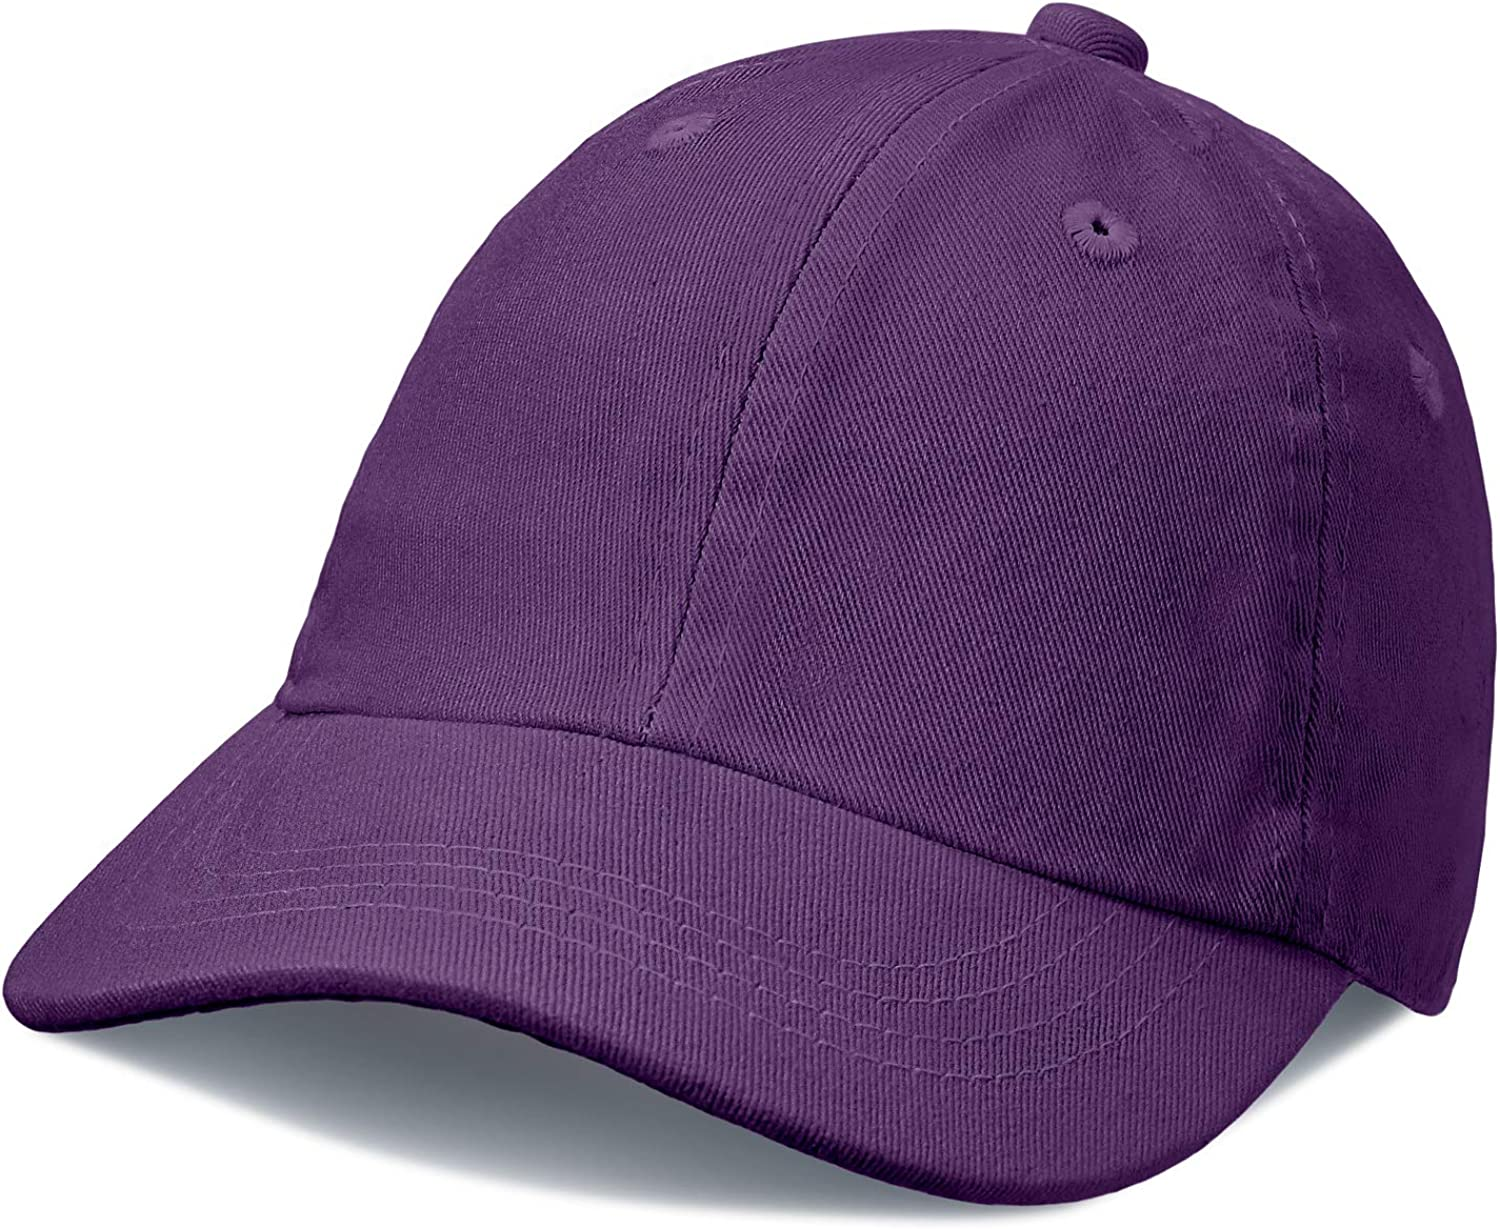 City Threads Boys' and Girls' Baseball Cap Sun Protection Sun Hat (Baby Toddler Youth)